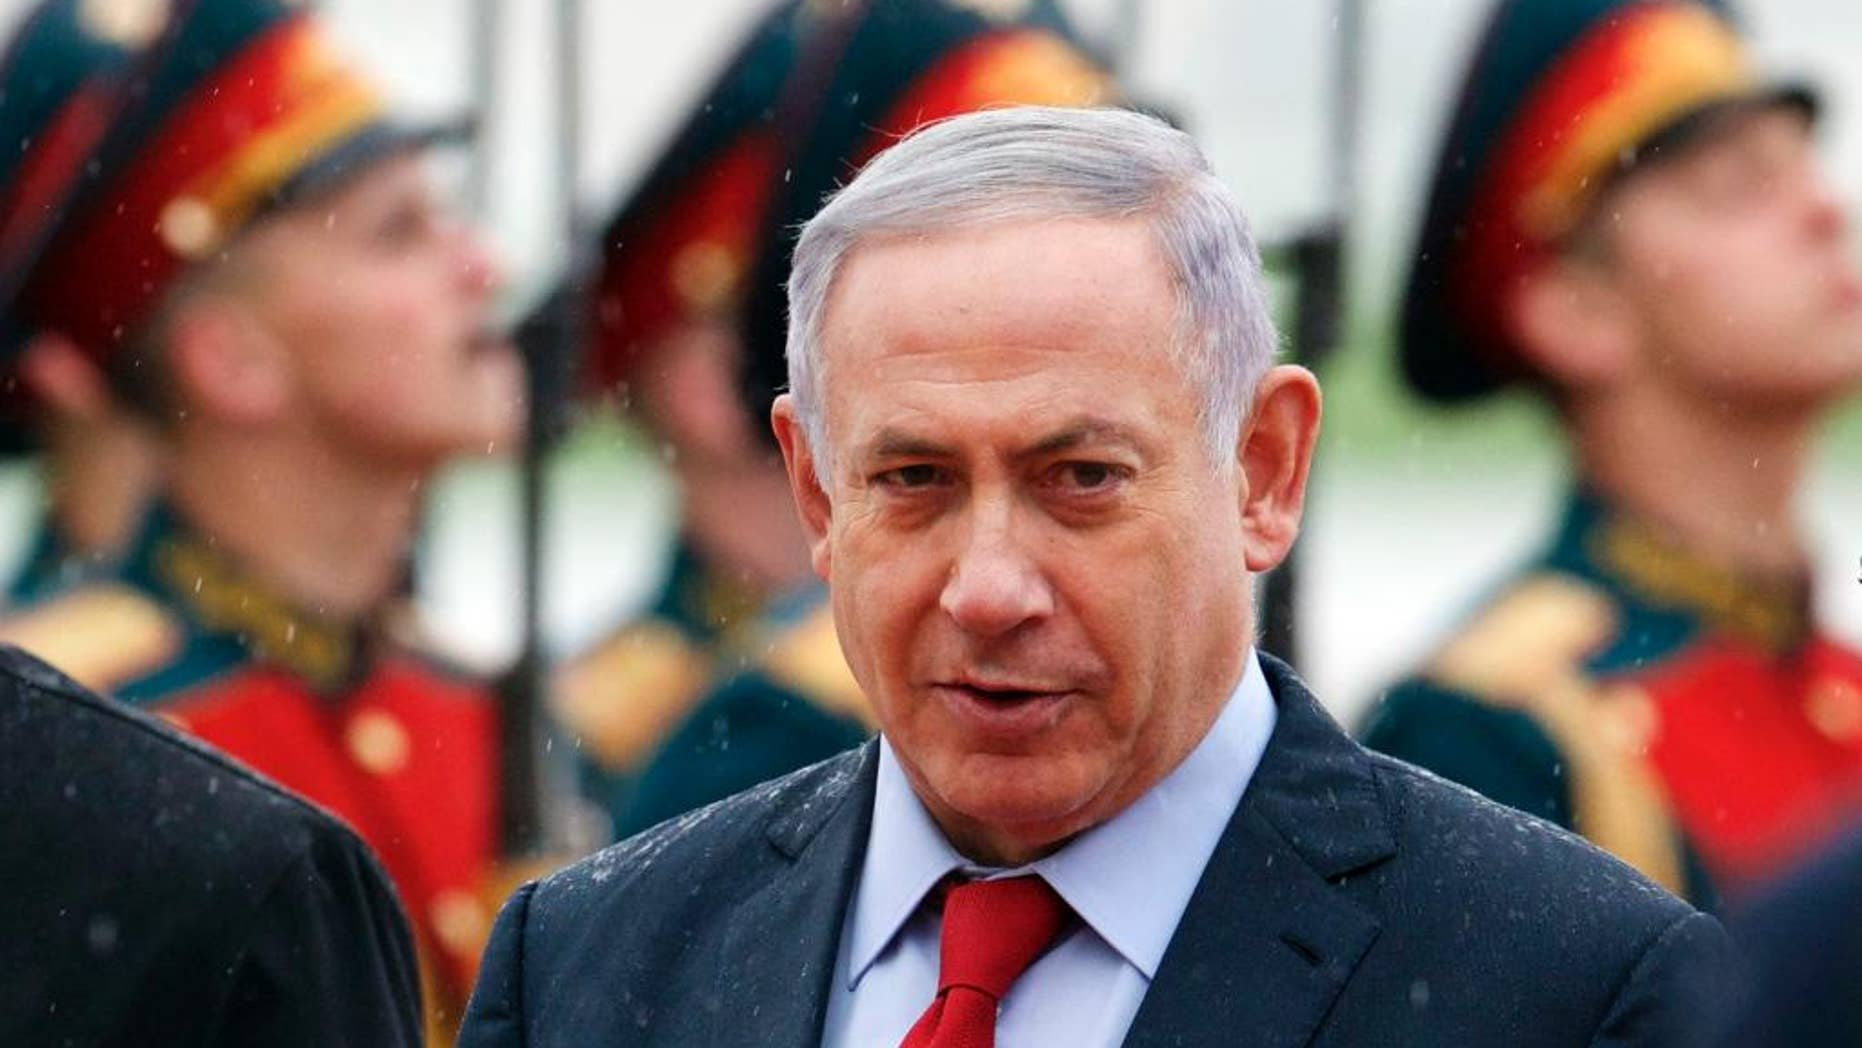 Israeli Prime Minister Benjamin Netanyahu reviews an honour guards shortly upon his arrival to government Vnukovo II airport just outside Moscow, Russia, on Monday, June 6, 2016. Netanyahu is on official visit to Russia. (AP Photo/Ivan Sekretarev)